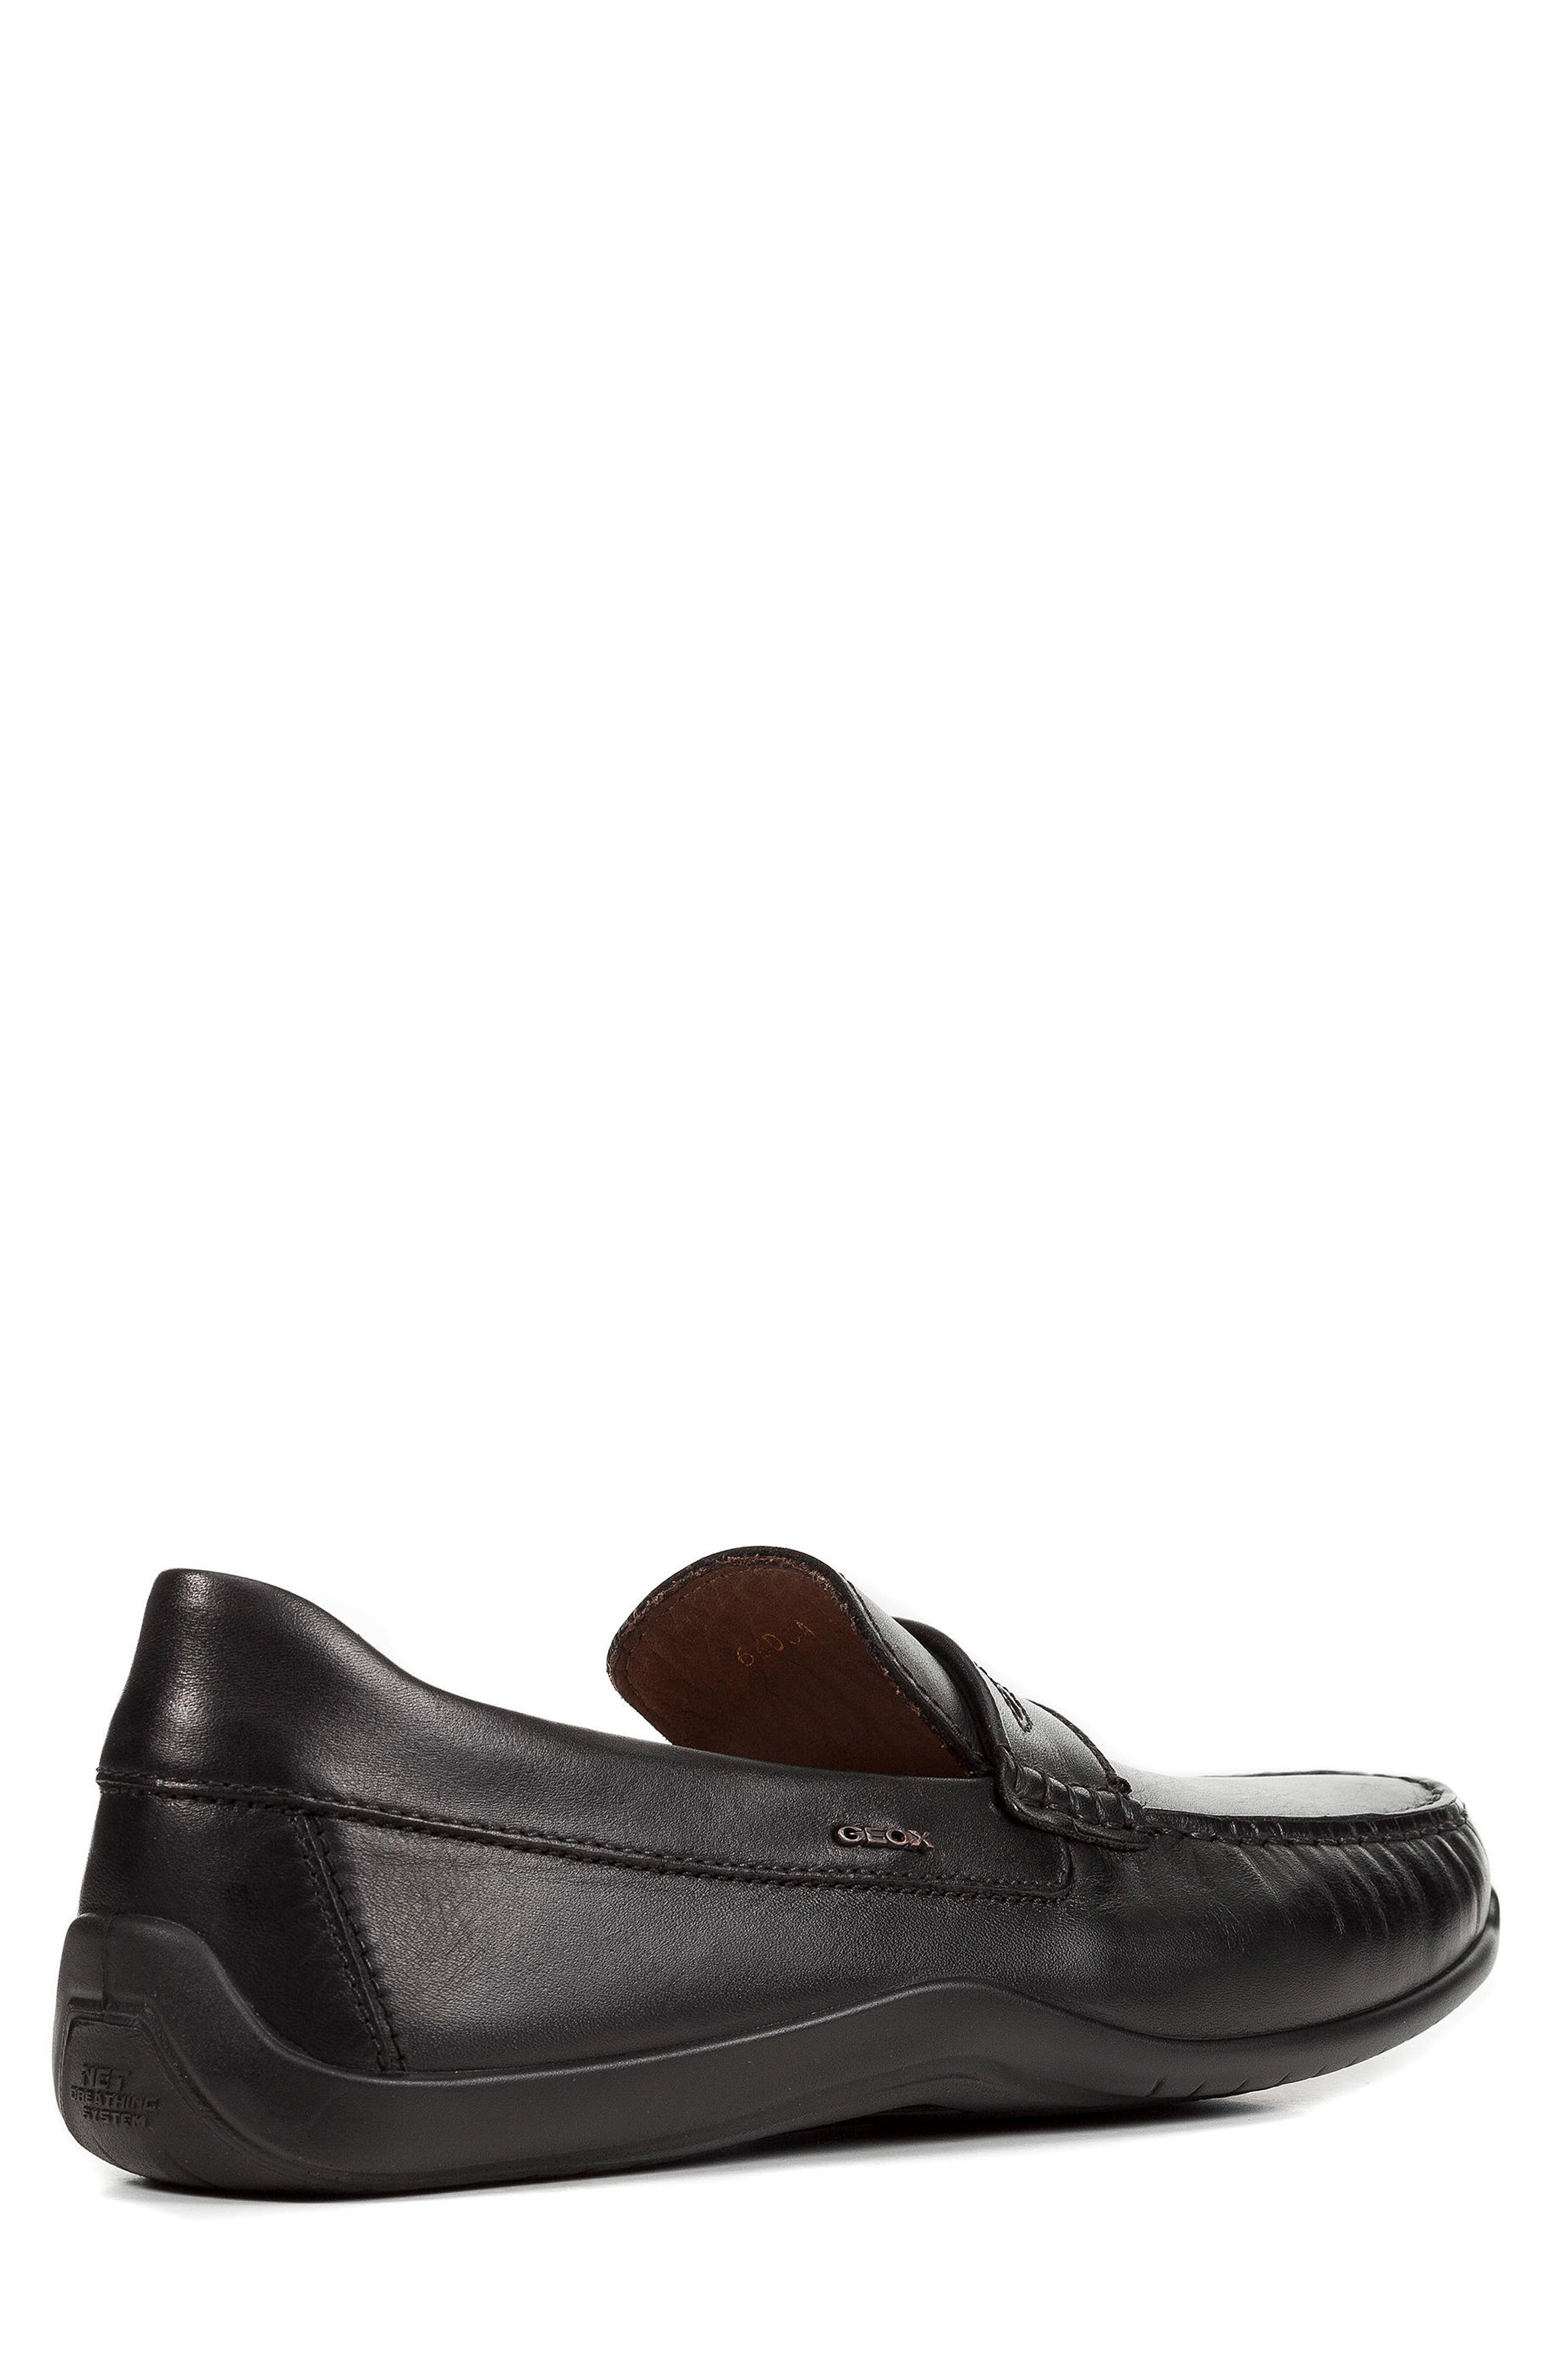 Xense Penny Loafer,                             Alternate thumbnail 2, color,                             Black Leather